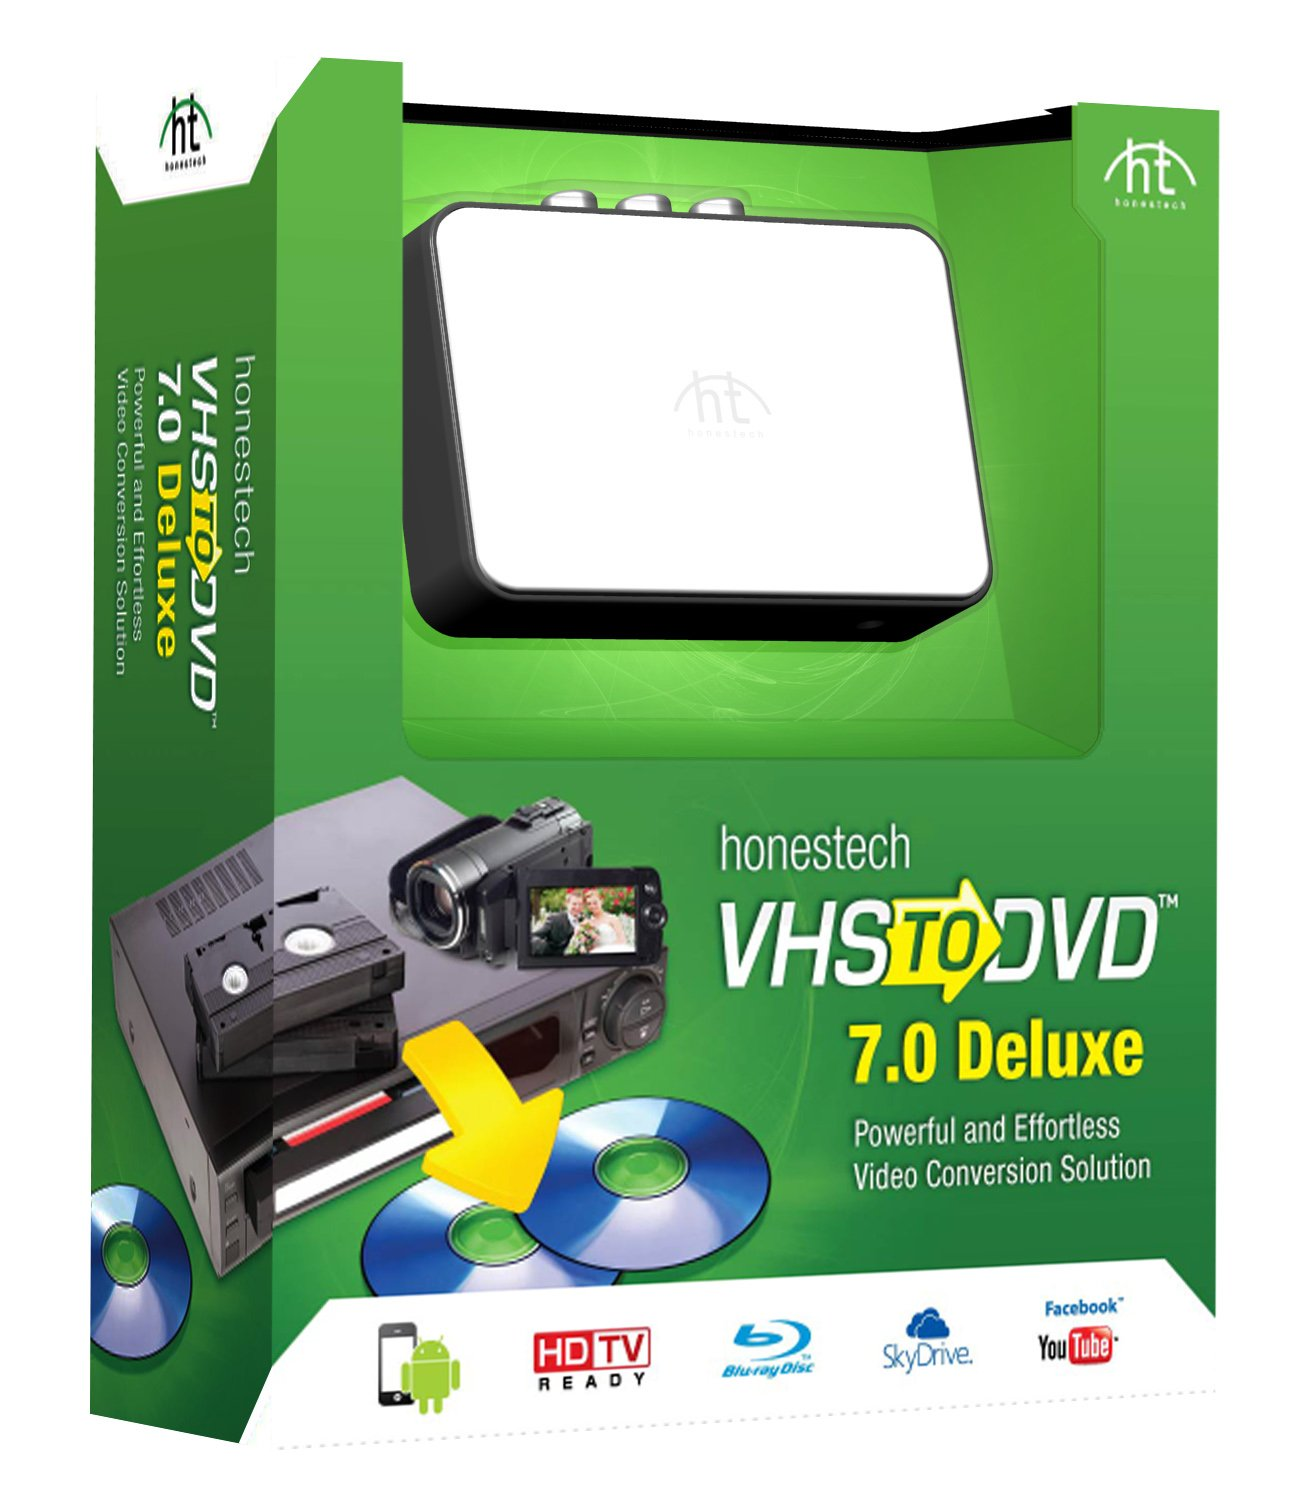 VHS to DVD 7.0 Deluxe by Honestech